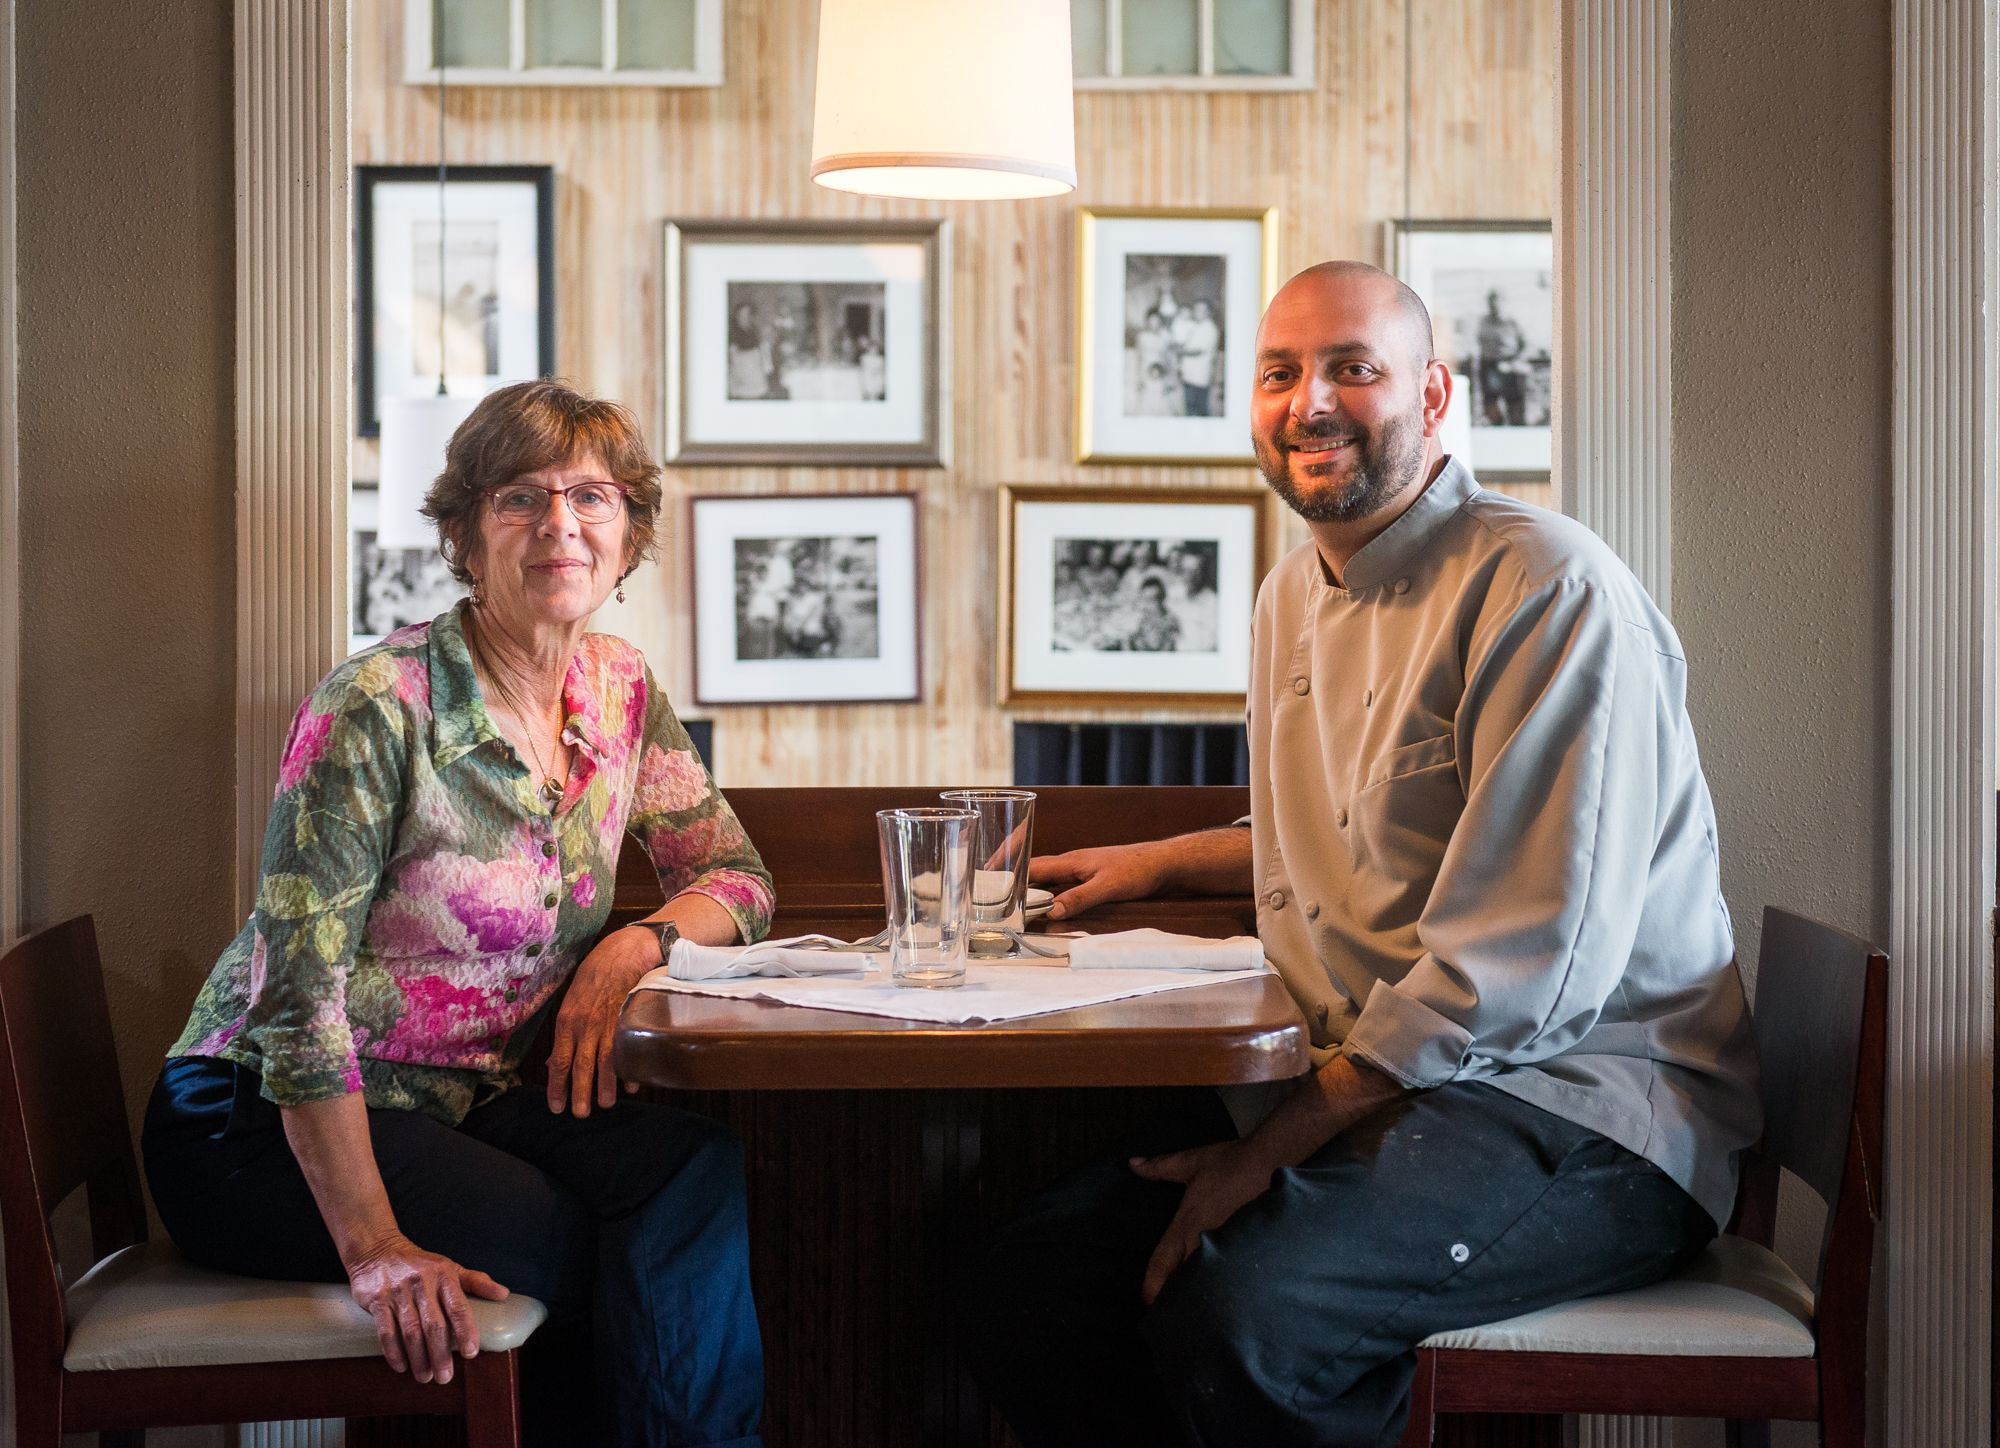 Ann Cashion (right) and  John Manolatos, current chef and co-owner of Cashion's Eat Place in Adams Morgan, will celebrate the restaurant's 20th anniversary on May 24. (Photo: R. Lopez/Cashion's Eat Place/Twitter)Ann Cashion (right) and  John Manolatos, current chef and co-owner of Cashion's Eat Place in Adams Morgan, will celebrate the restaurant's 20th anniversary on May 24. (Photo: R. Lopez/Cashion's Eat Place/Twitter)